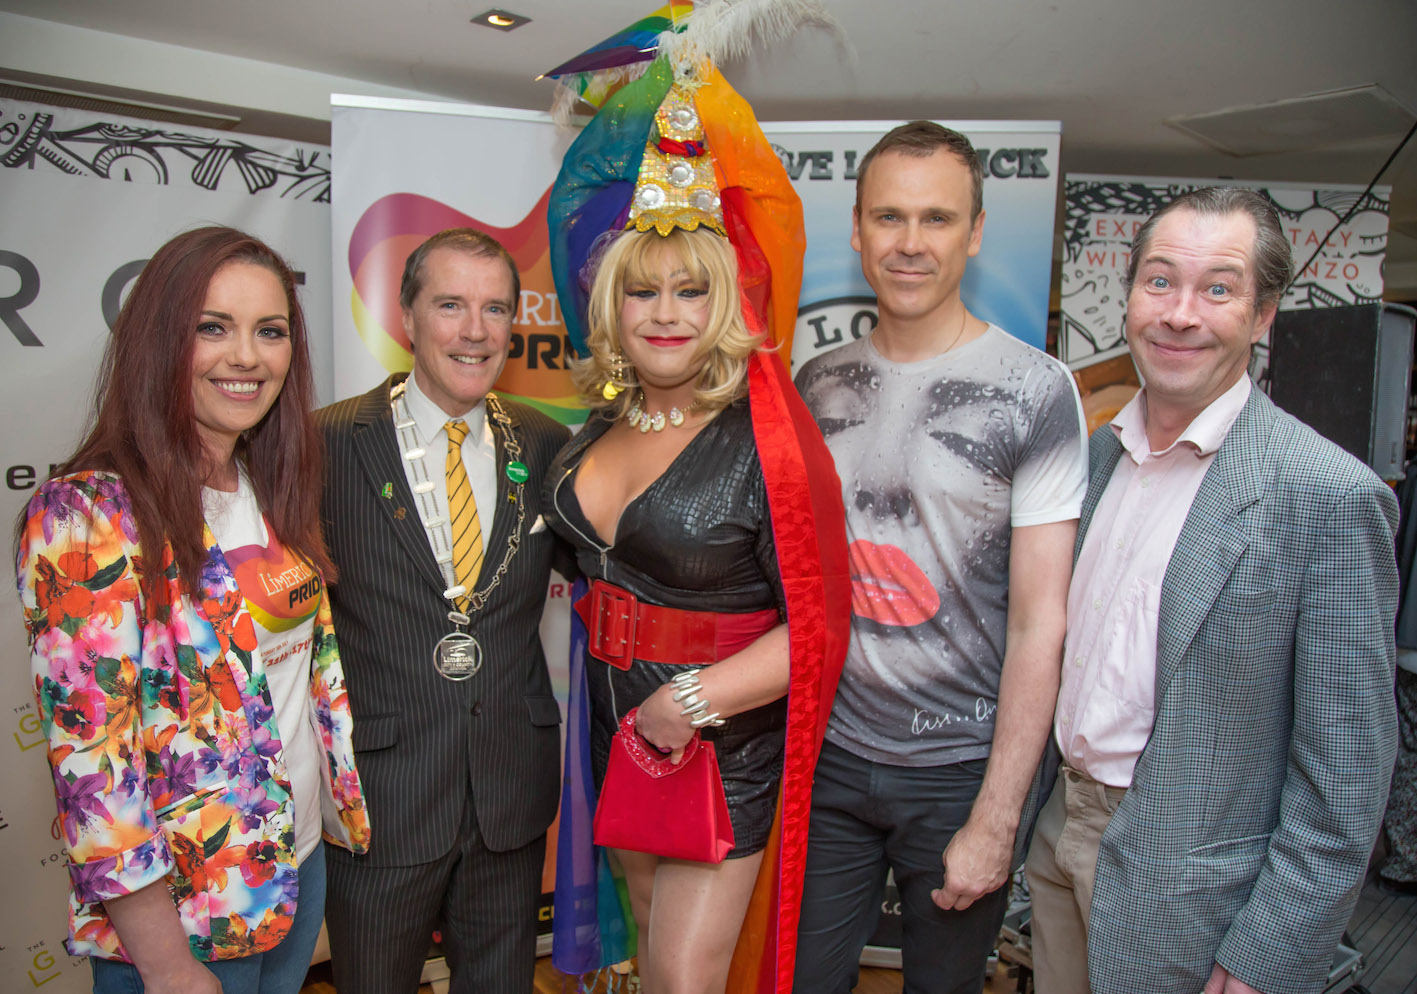 Lisa Daly, Chairperson Limerick LGBTI Pride 2016, Gerald Mitchell, Deputy Mayor of Limerick, Elsie Cox, Strokers Gay Bar, Richard Lynch, PRO Limerick LGBTI Pride 2016 and actor Myles Breen pictured at the press launch for Limerick LGBTI Pride Festival 2016 at the George Boutique Hotel. Picture: Johnny Baynes/ilovelimerick.